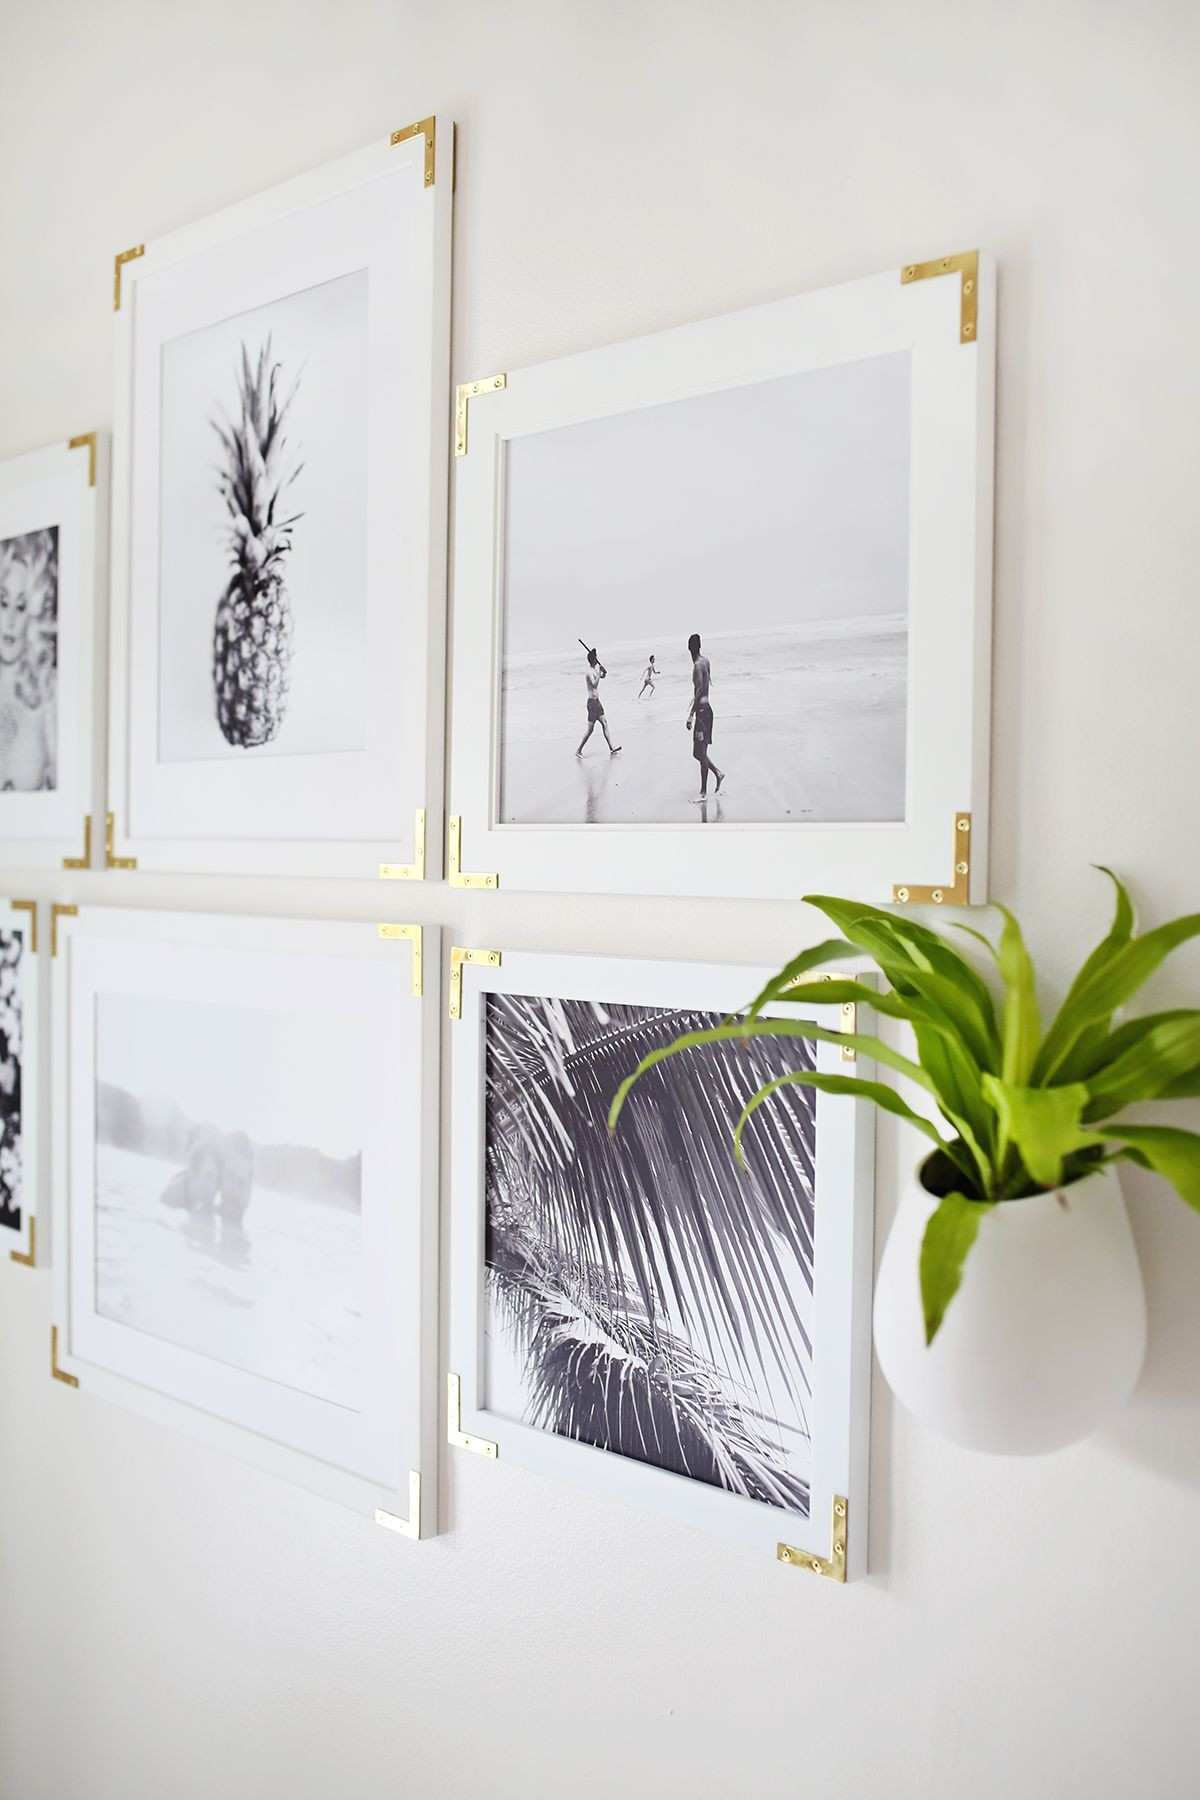 Try This Update Simple Frames With Gold Hardware